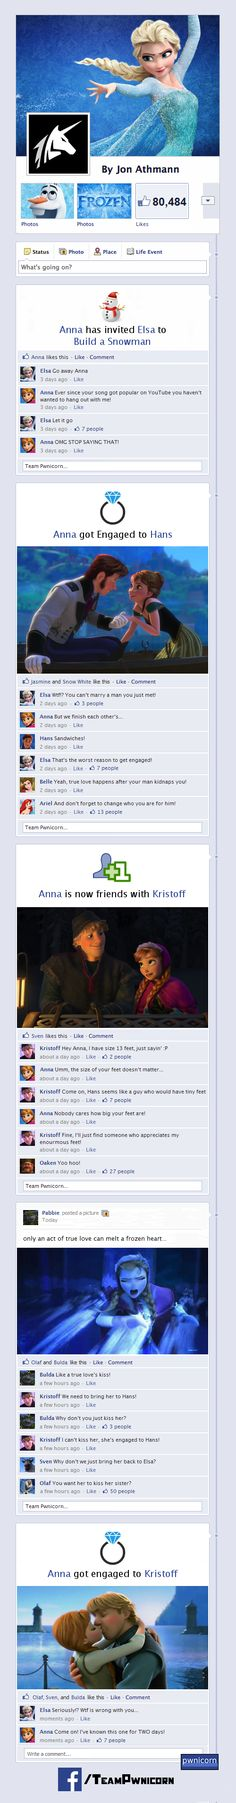 Frozen on Facebook, DYING LAUGHING! But look away if you don't want to spoil the movie ;)